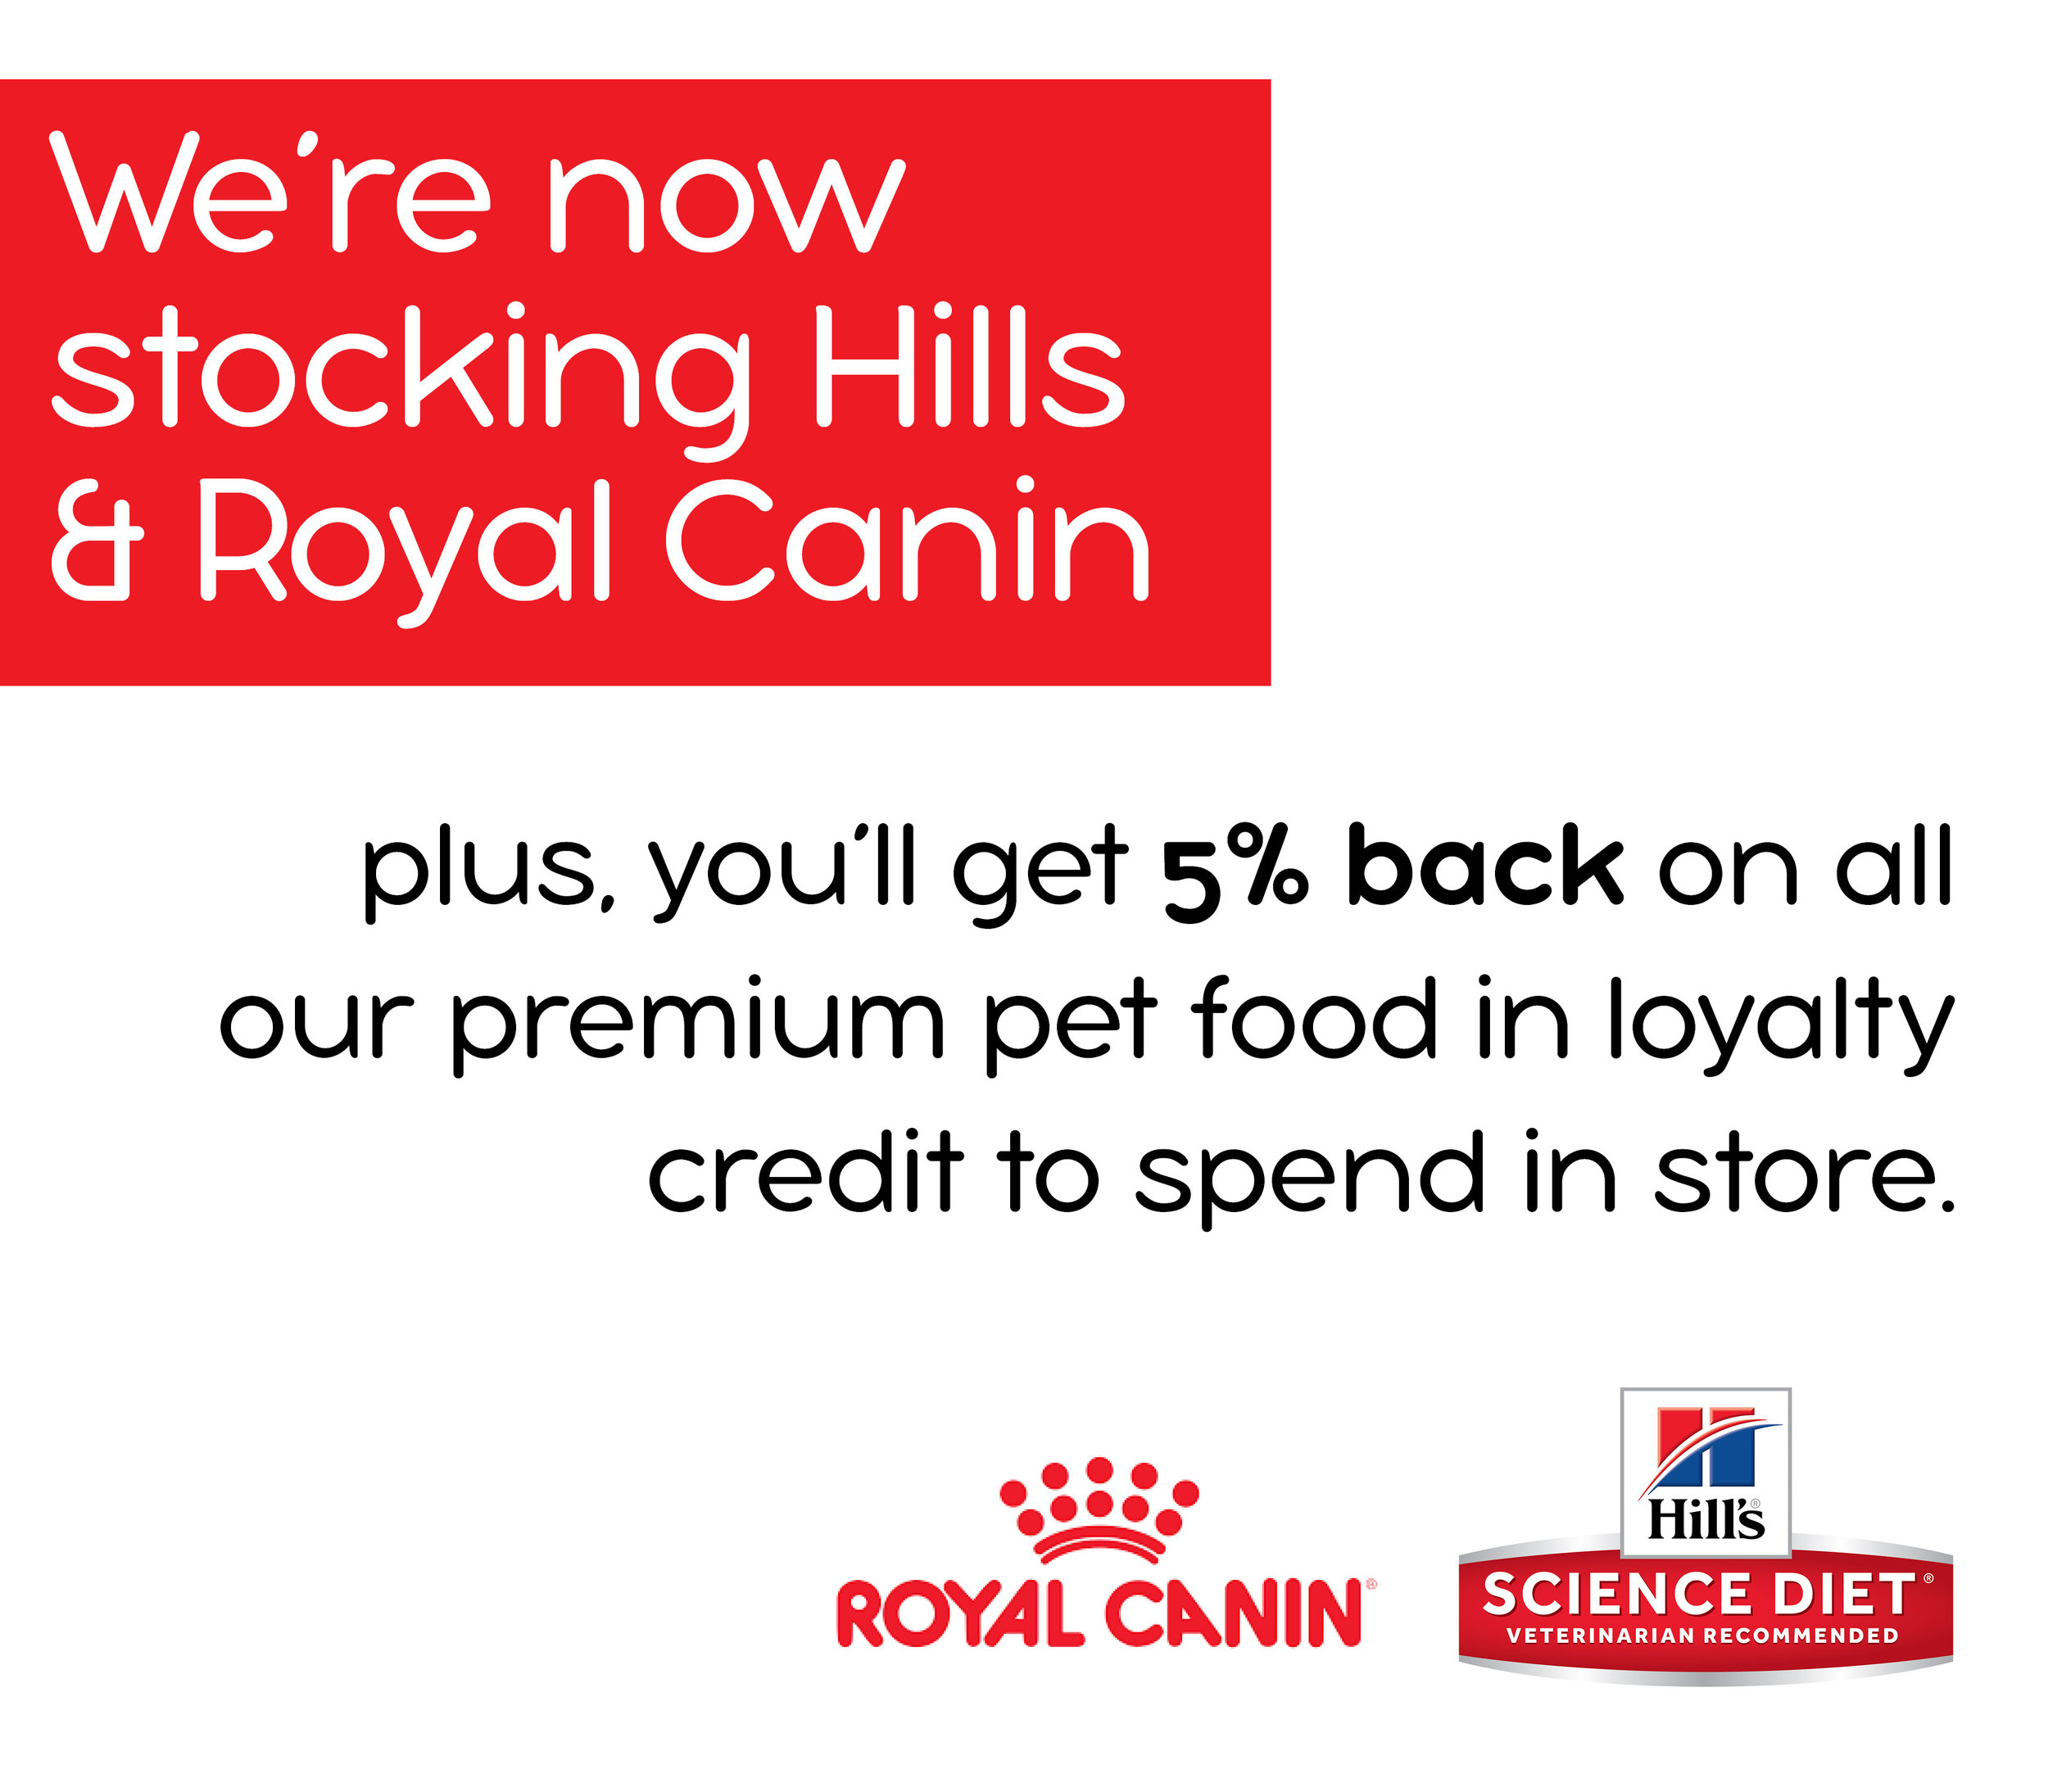 Royal Canin and HIll Slide.jpg